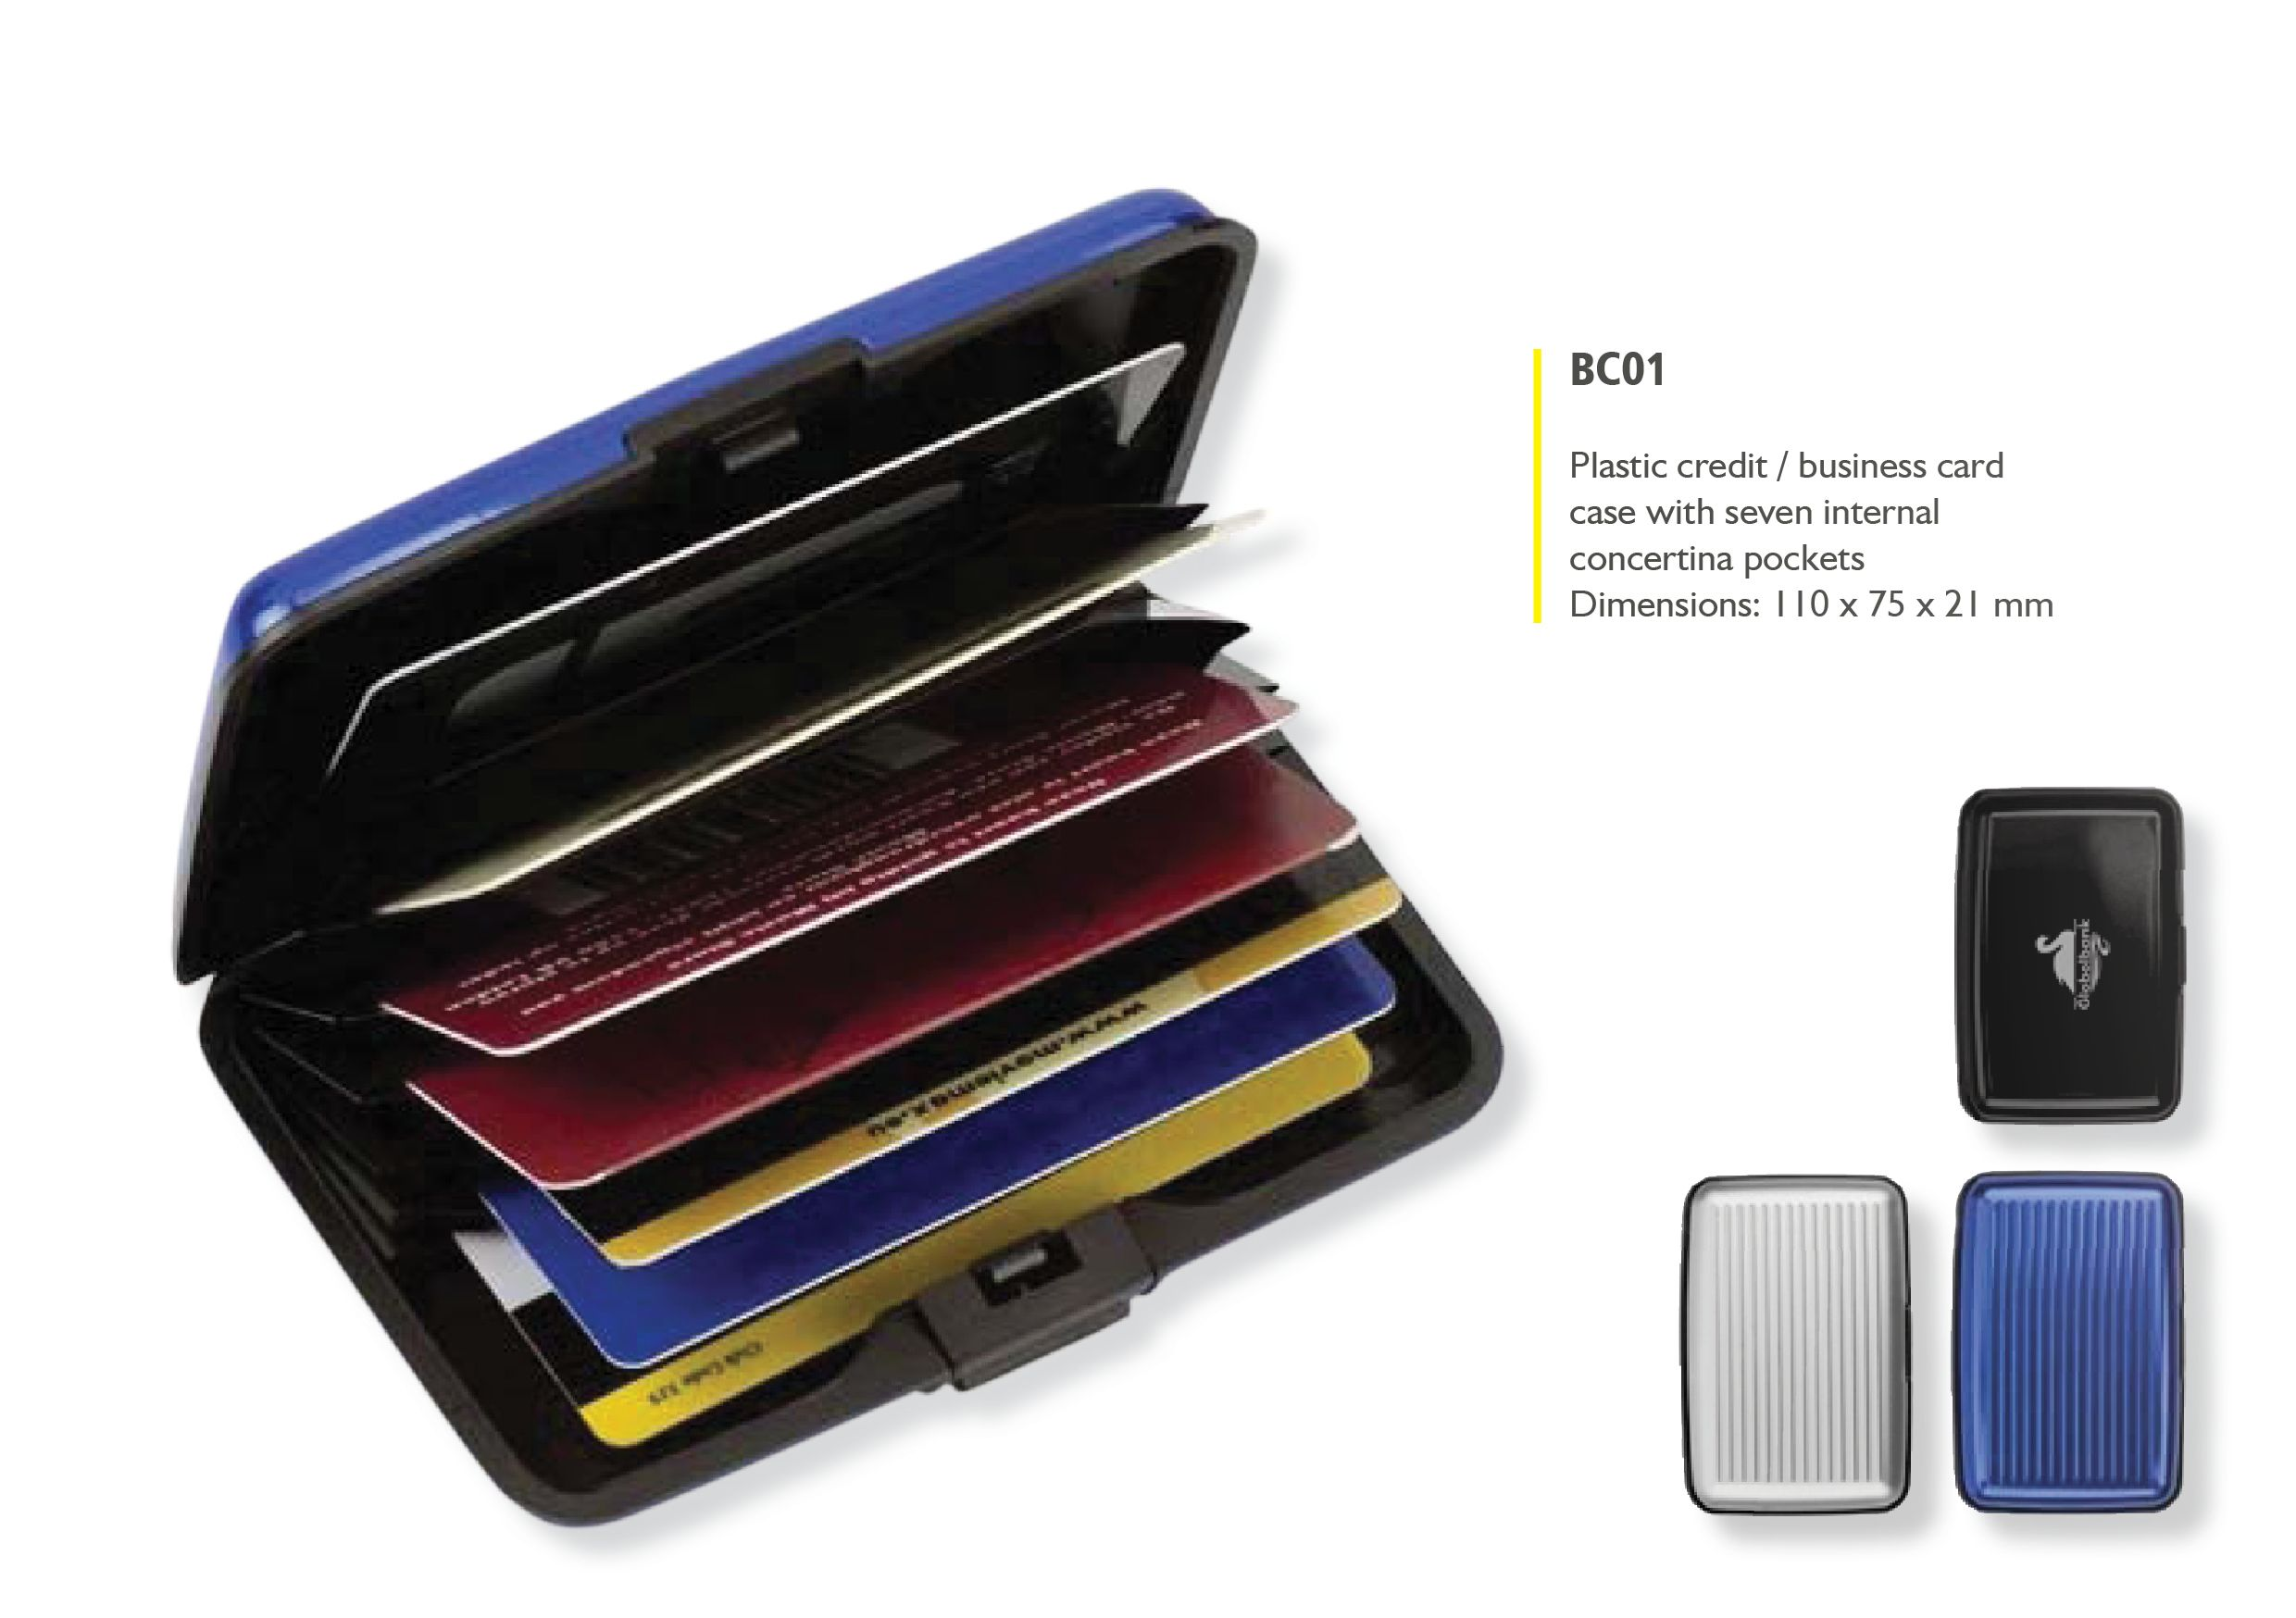 10 best koncept card holder images on pinterest business card 10 best koncept card holder images on pinterest business card holders card holder and business cards reheart Choice Image